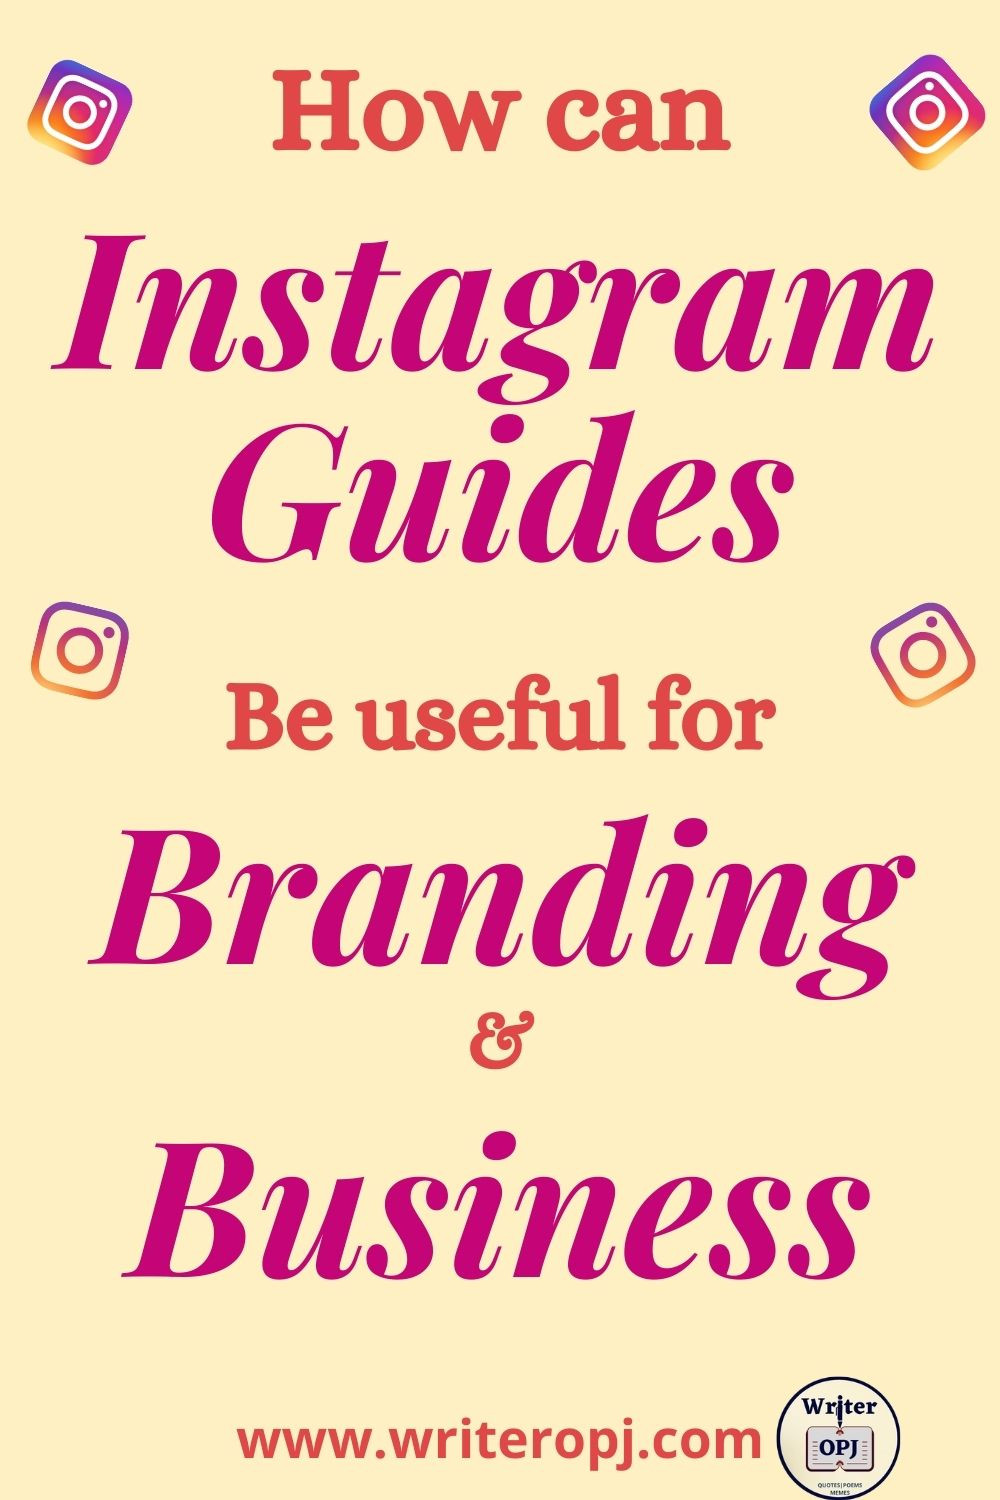 How can Instagram Guides be used for Business and Branding and Content Creators? Advantages of Instagram Guides